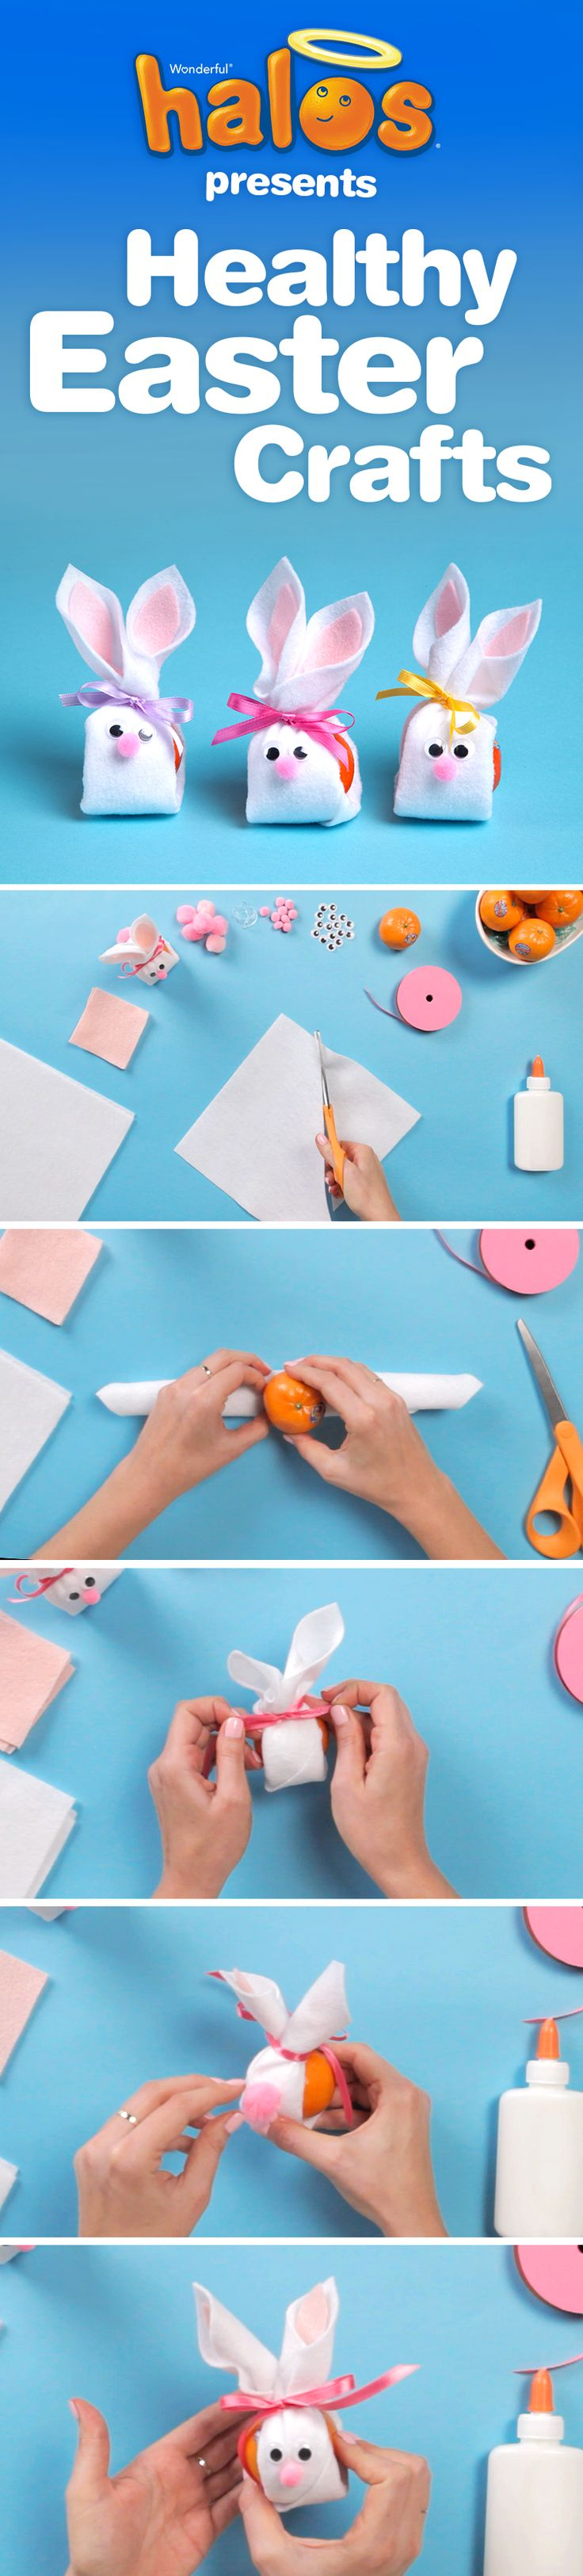 Learn how to make a simple, healthy Easter craft with a Wonderful Halos mandarin and just a few simple materials.